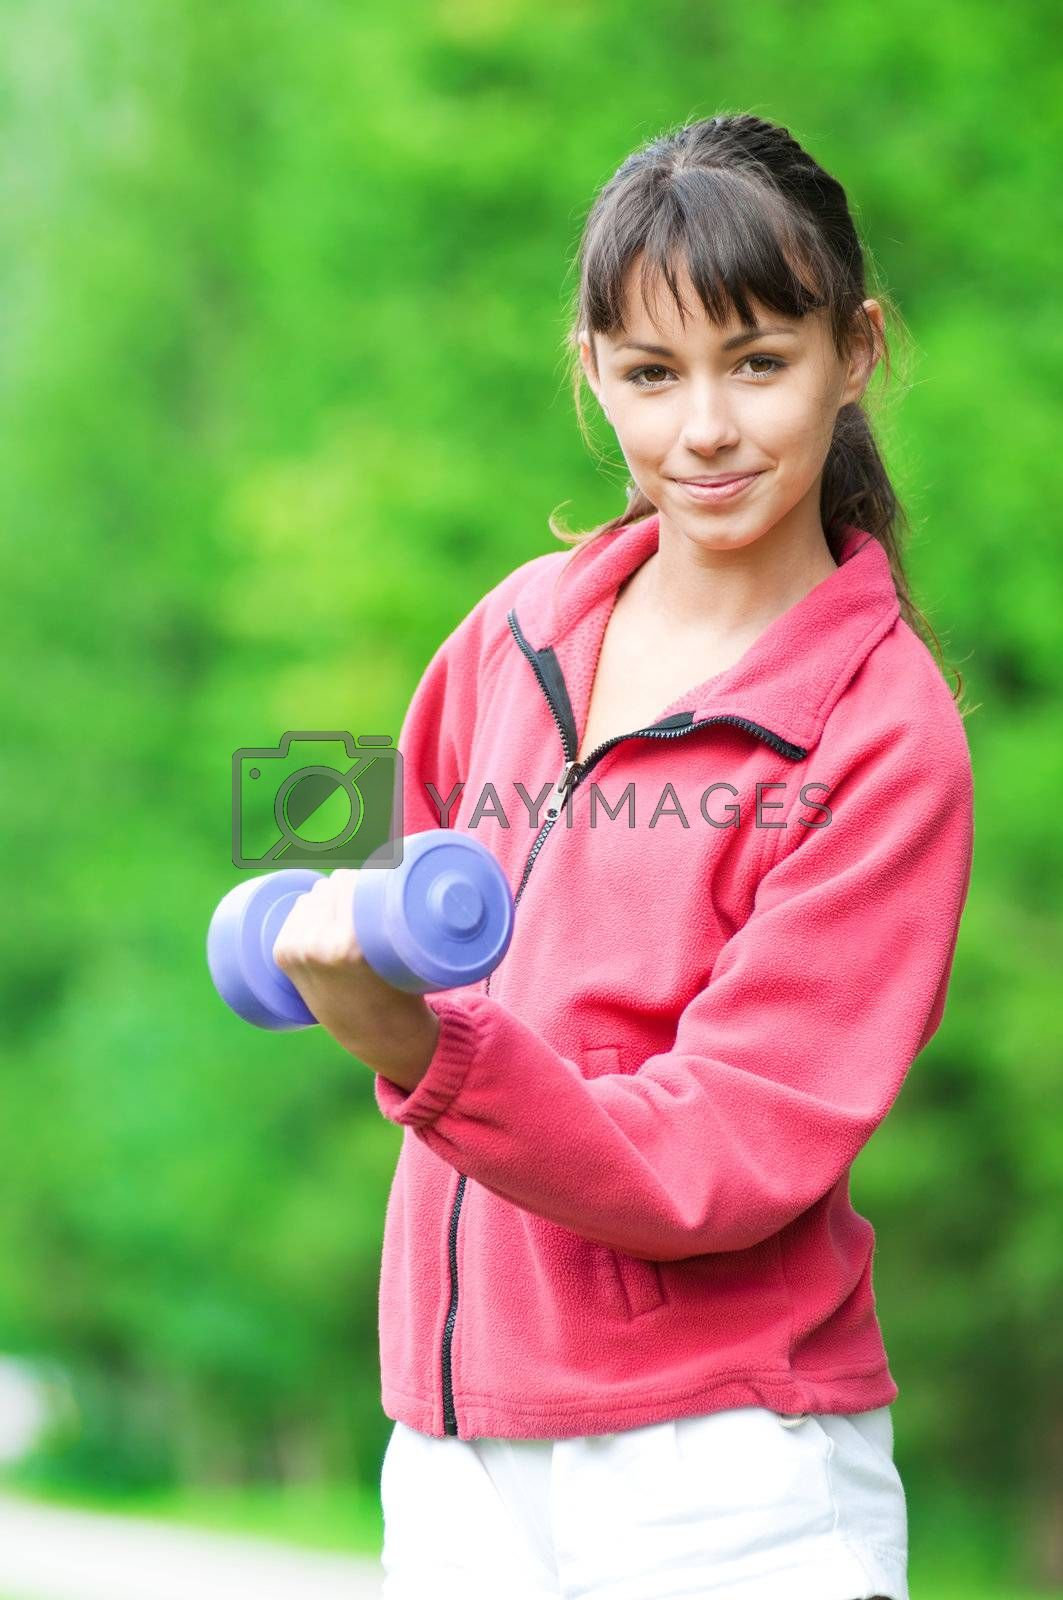 Beautiful teenage girl doing dumbbell exercise on green grass at park